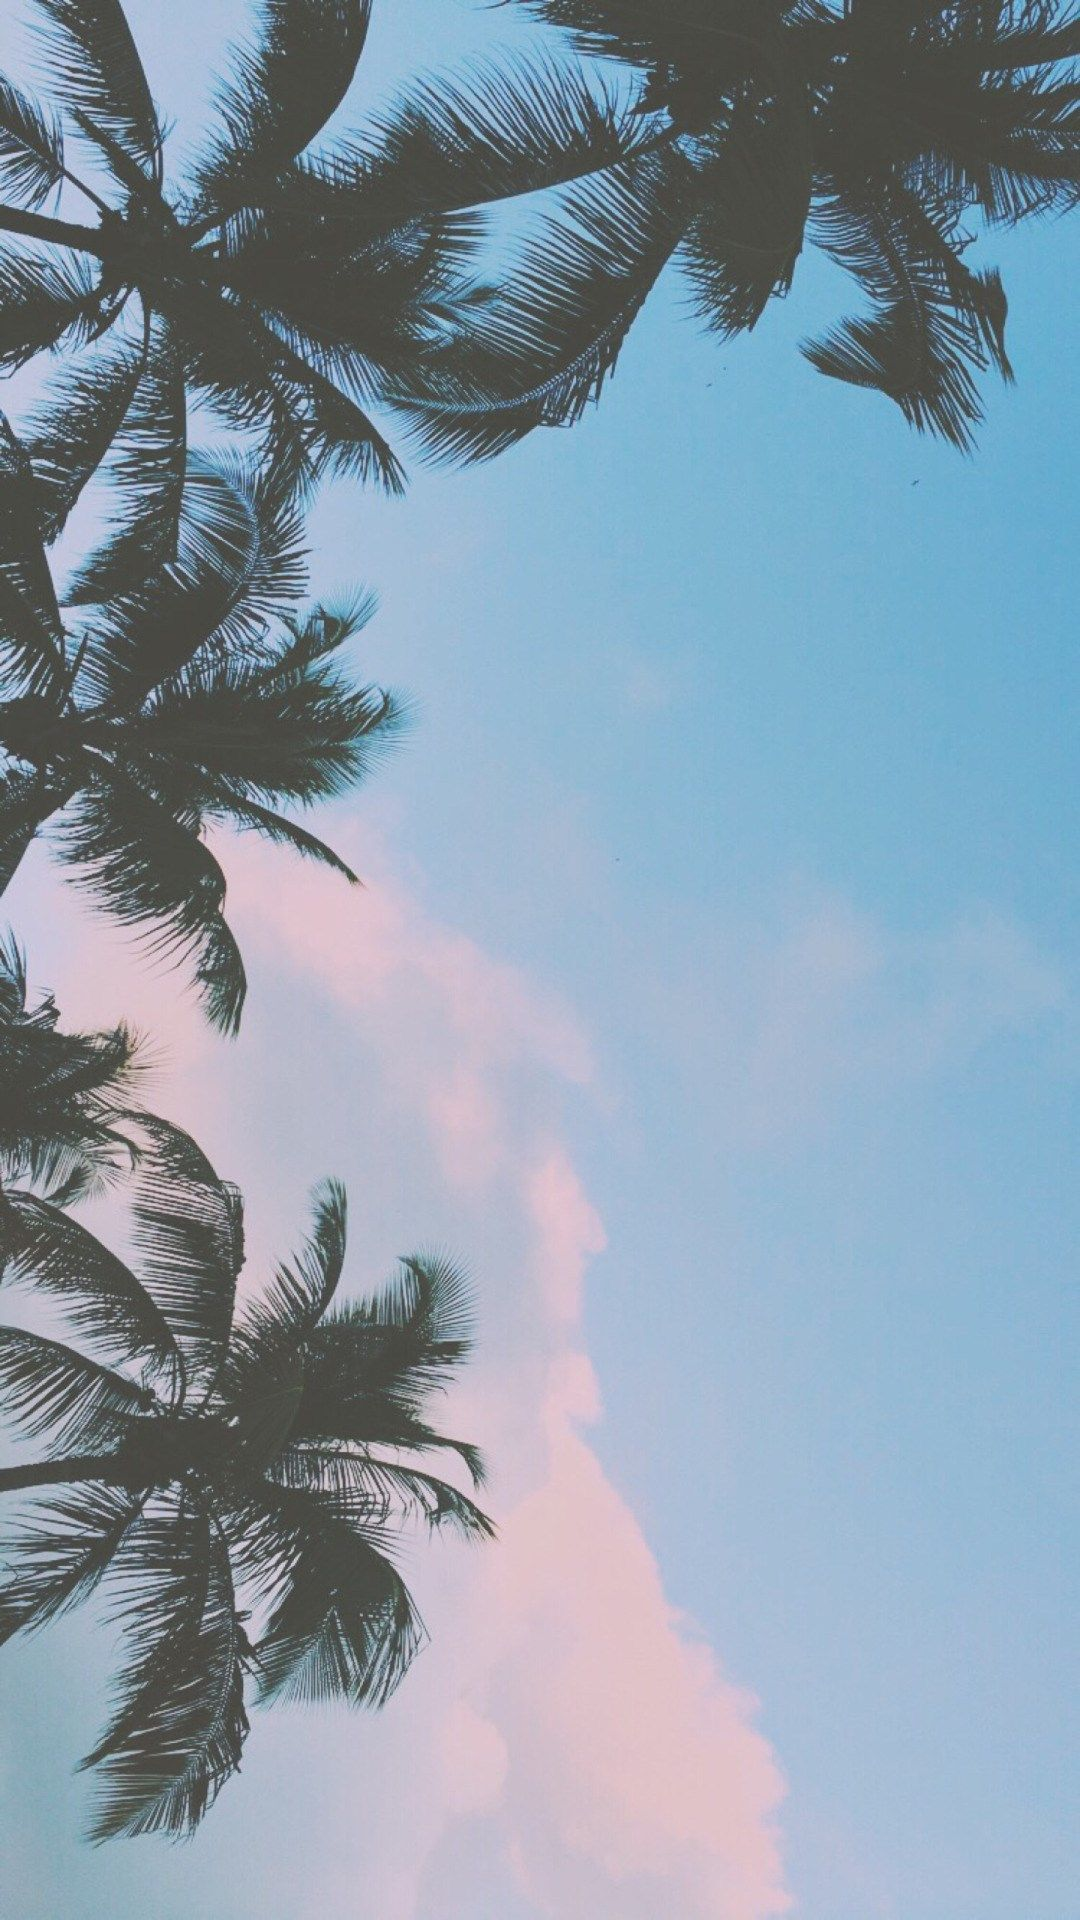 Awesome Iphone Wallpaper Swag Tumblr 39 Iphonewallpapers